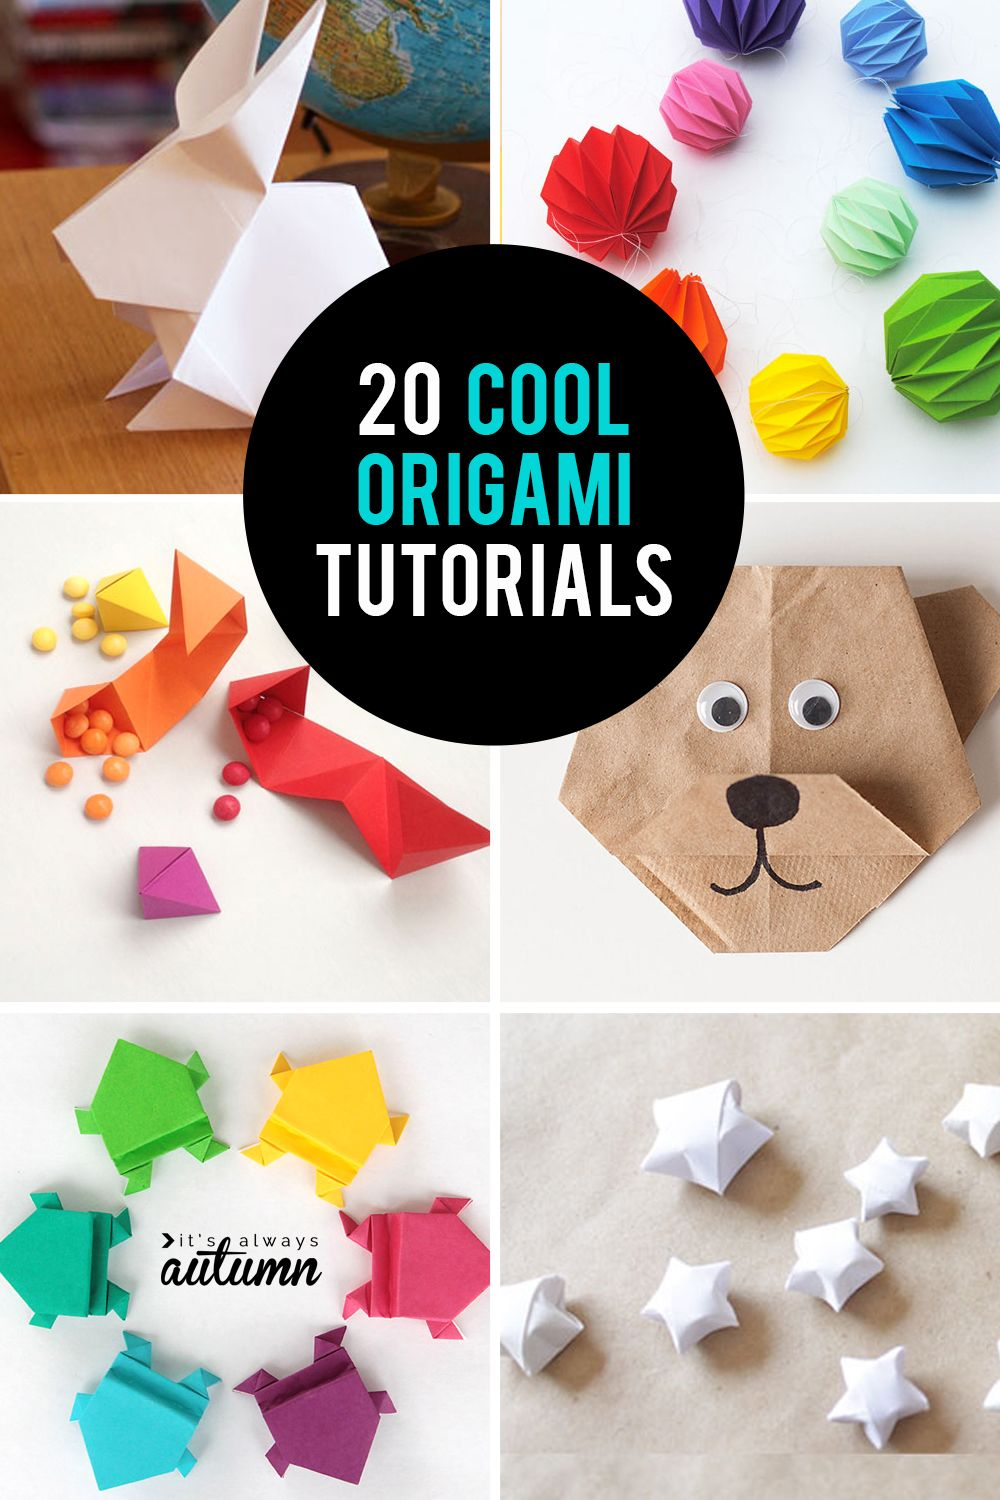 Origami for Everyone - Instructables | 1500x1000